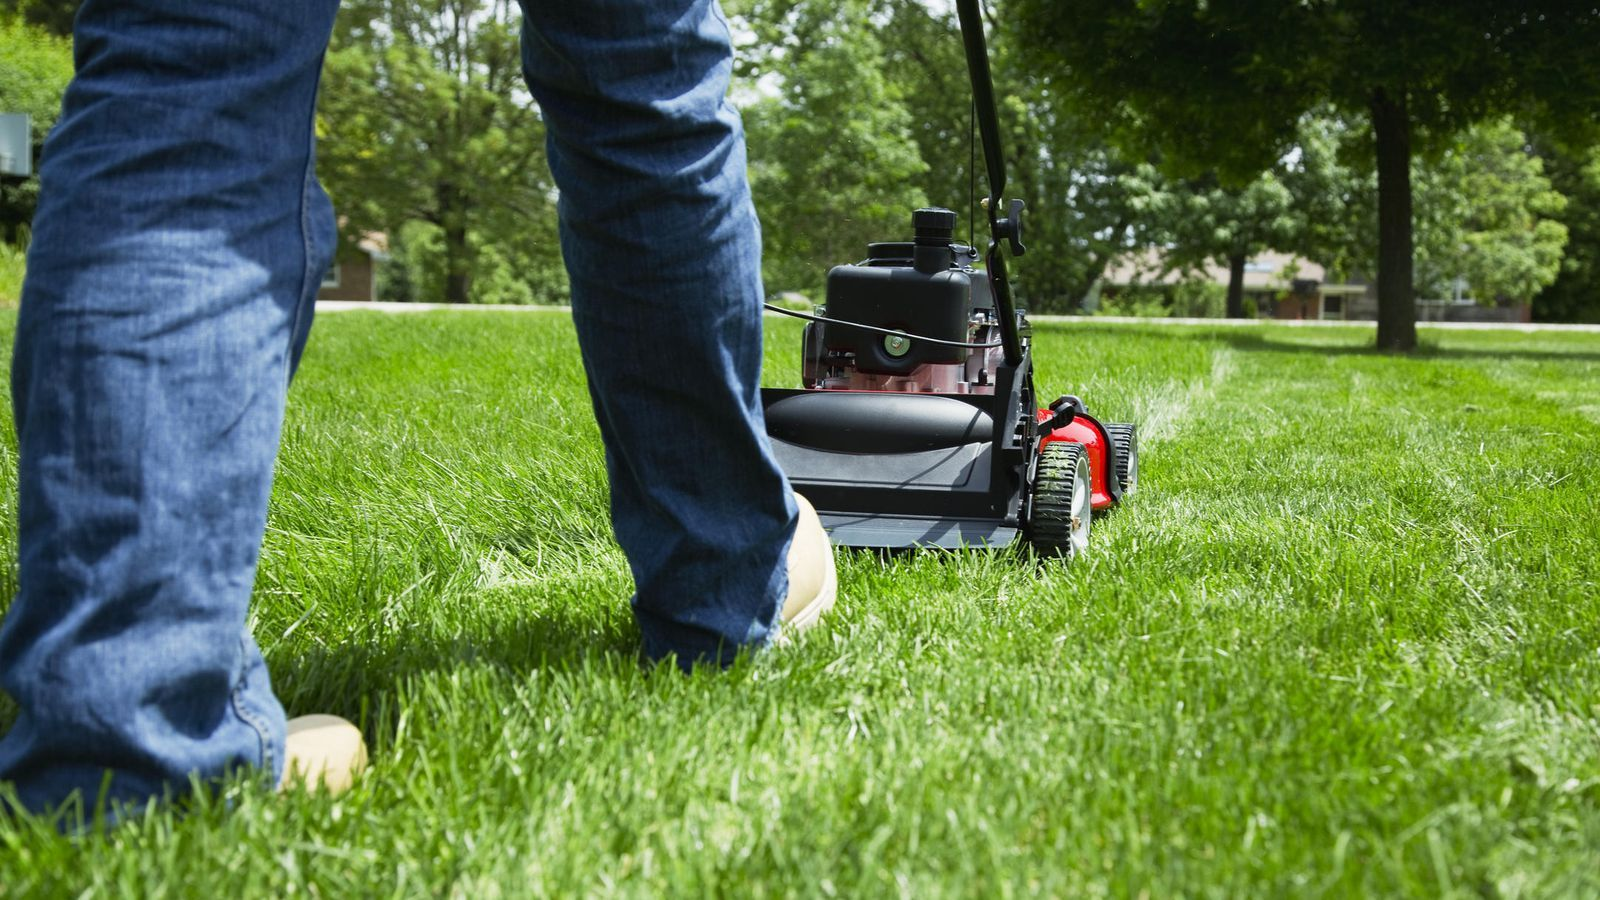 How to maintain your lawn during the summer is part of lawn Tips How To Make - Cutting, watering and mulching tips to keep grass green in the heat